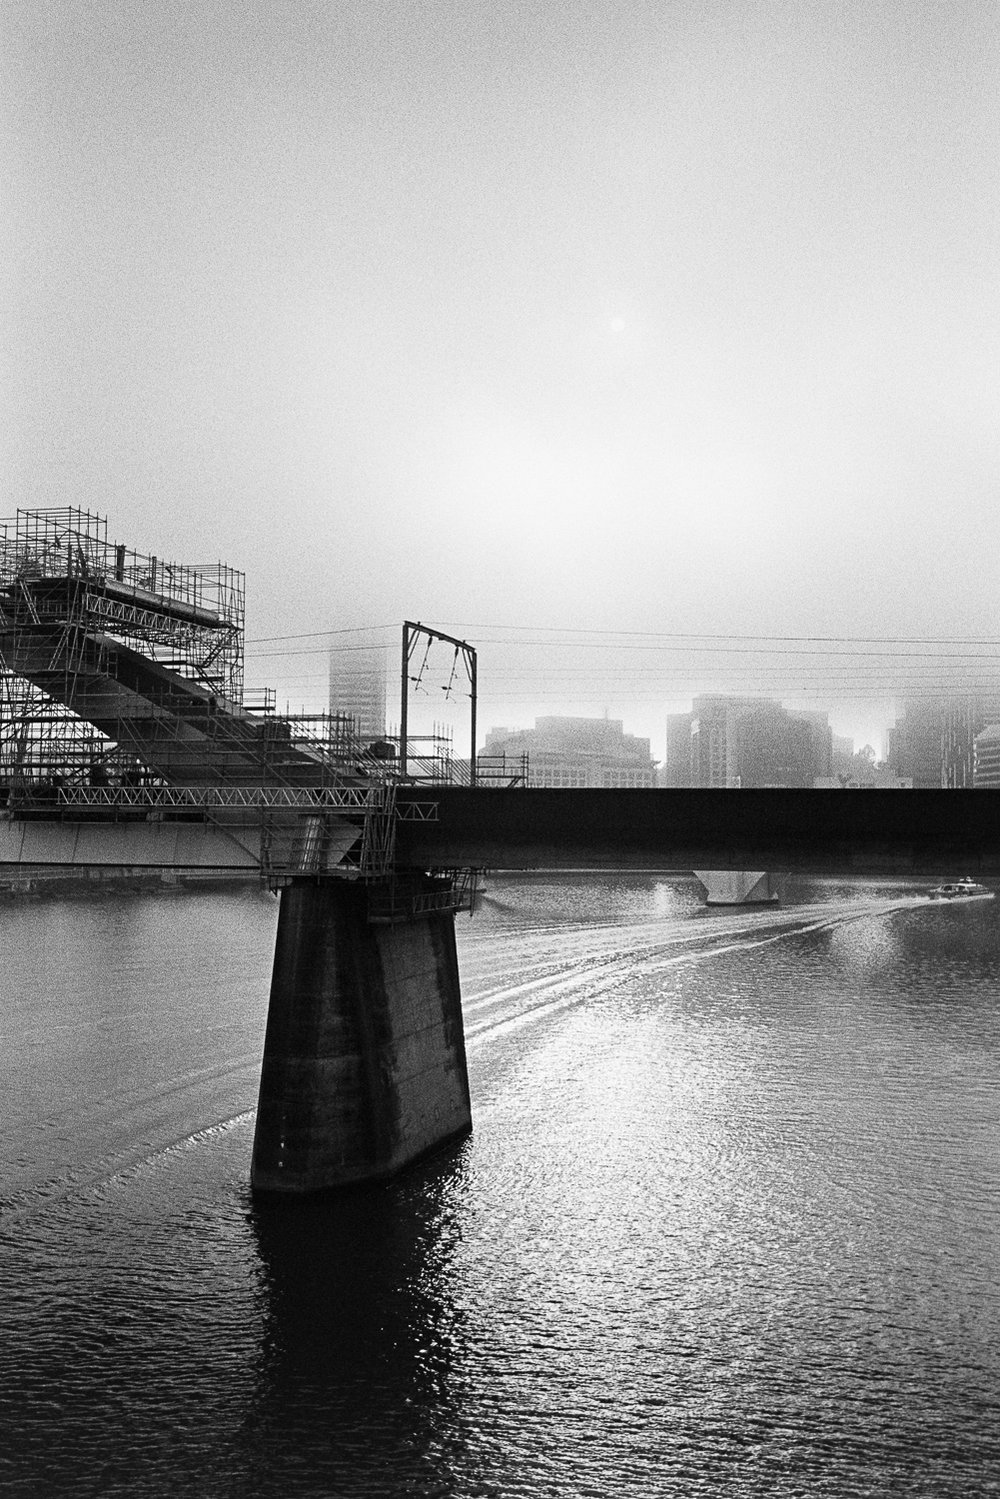 Foggy morning over the Brisbane River.